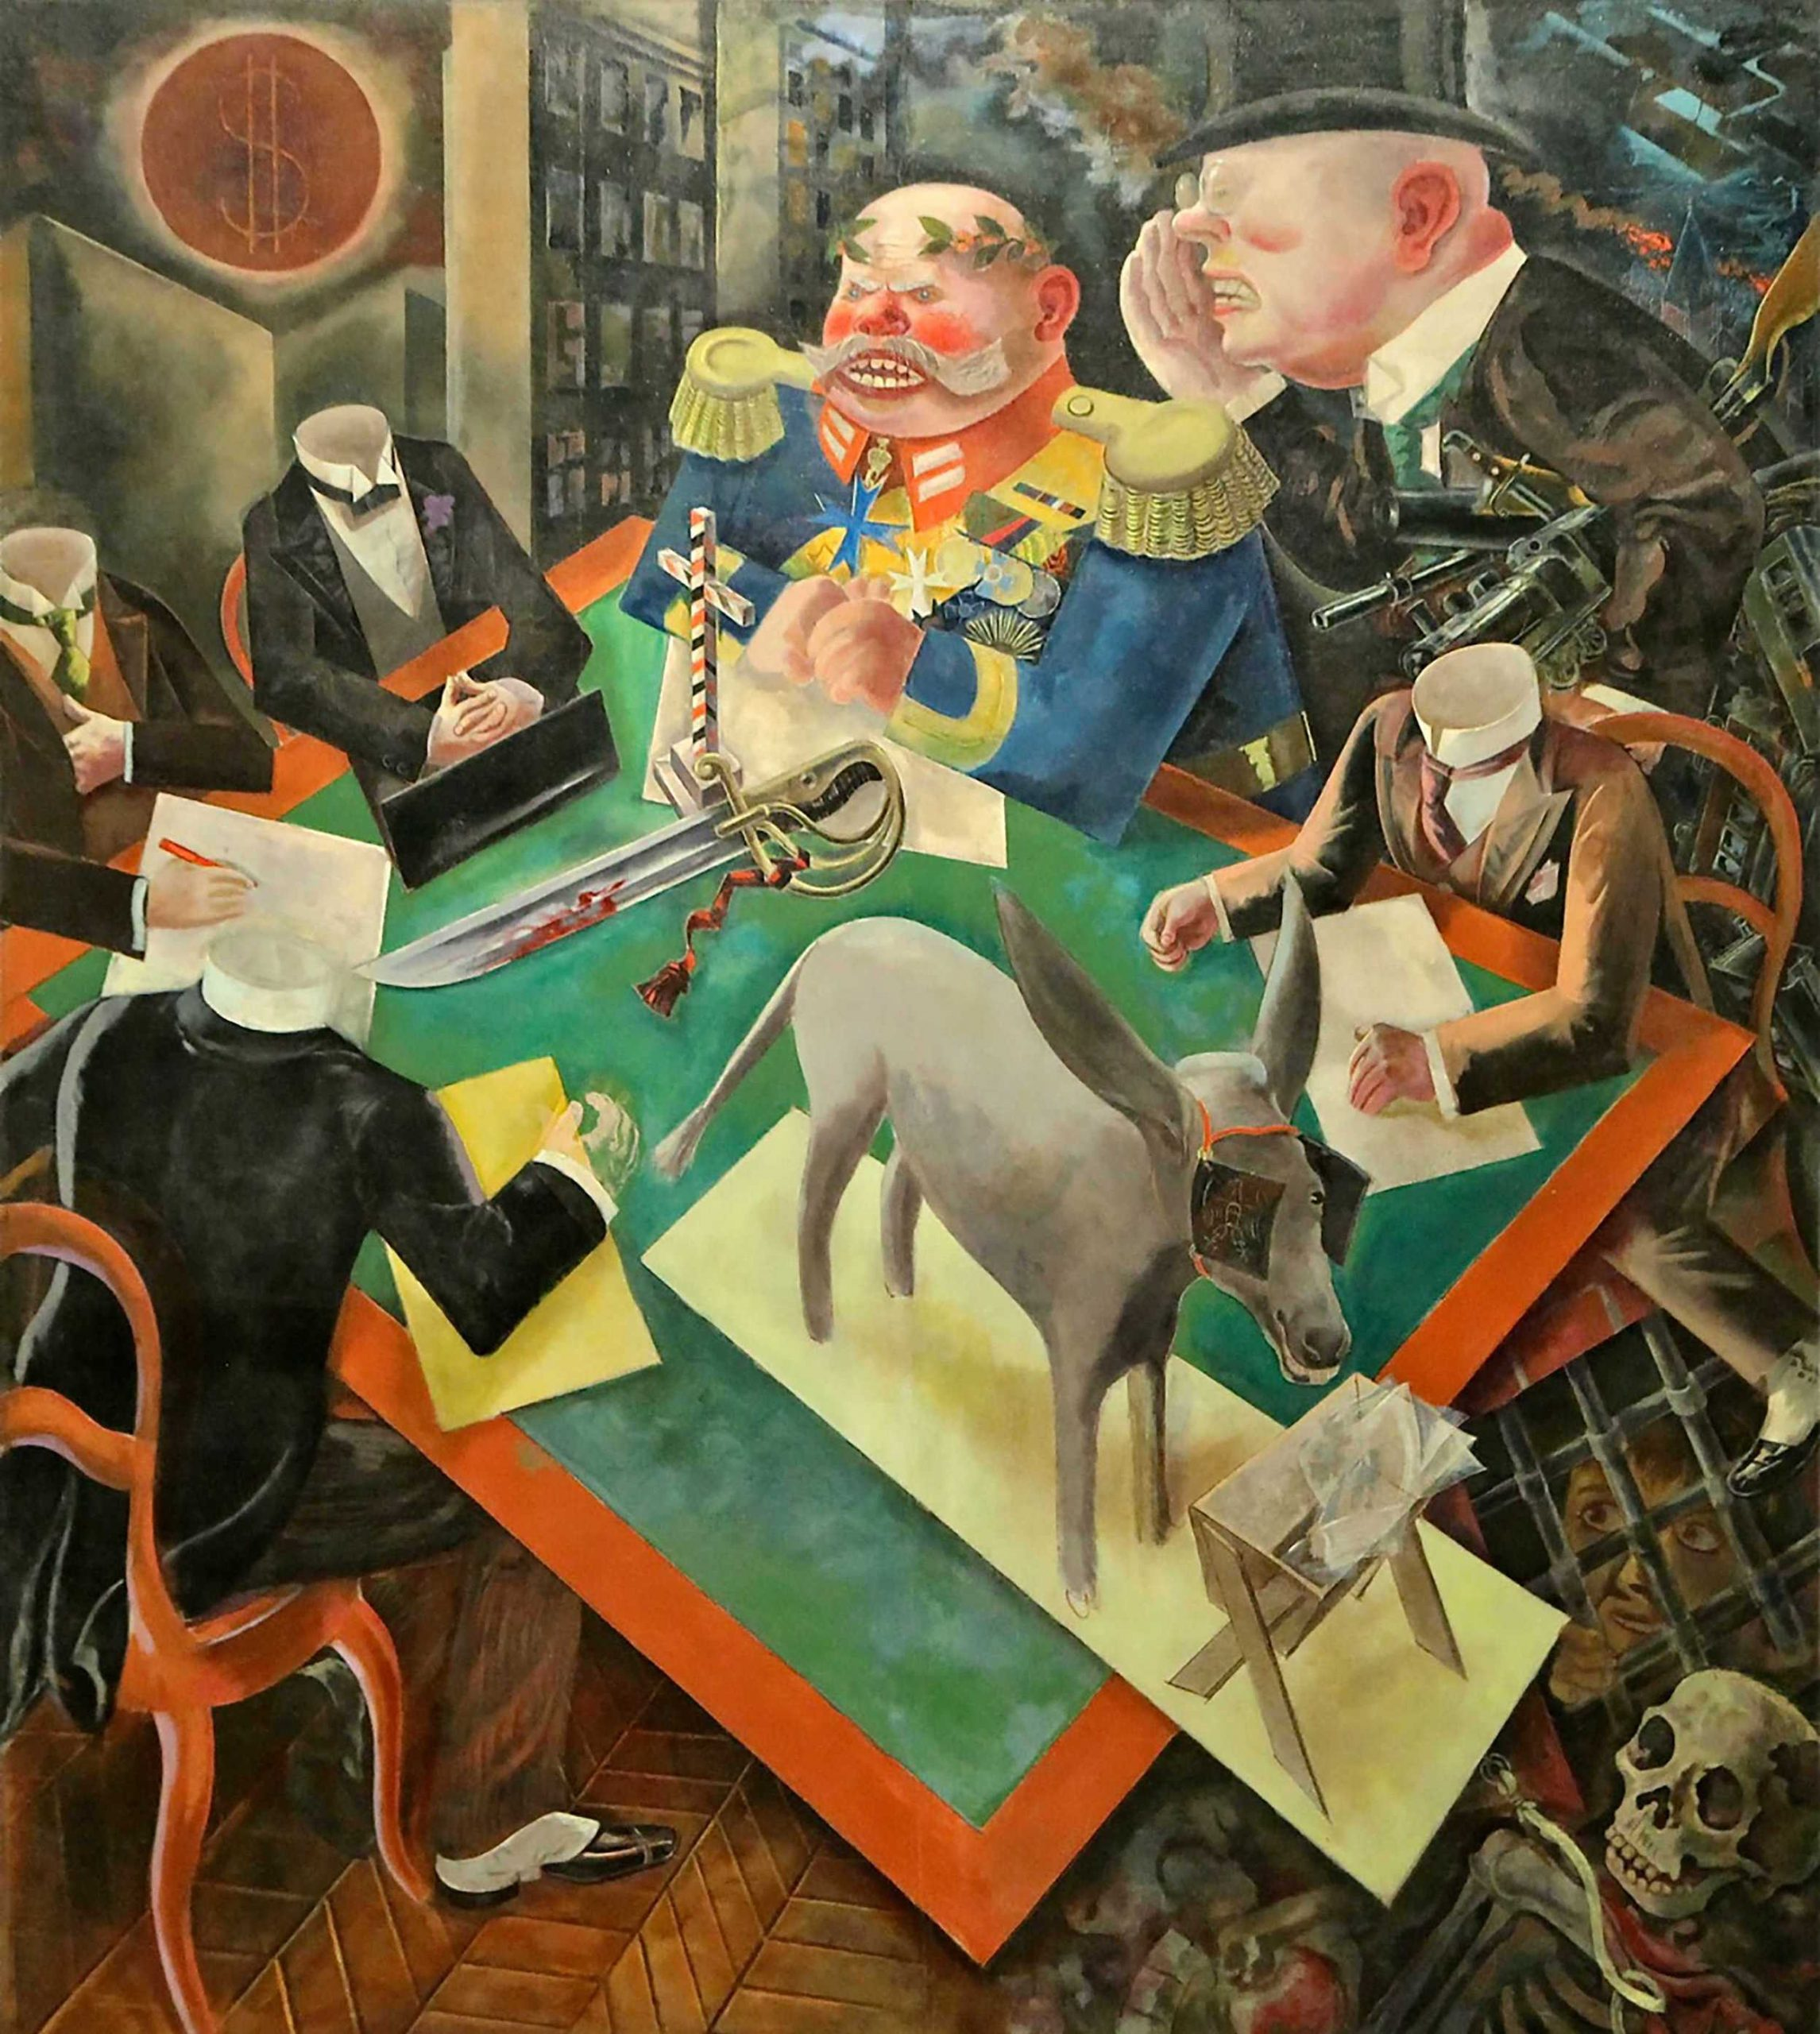 George-grosz-the-eclipse-of-the-sun-1-sc